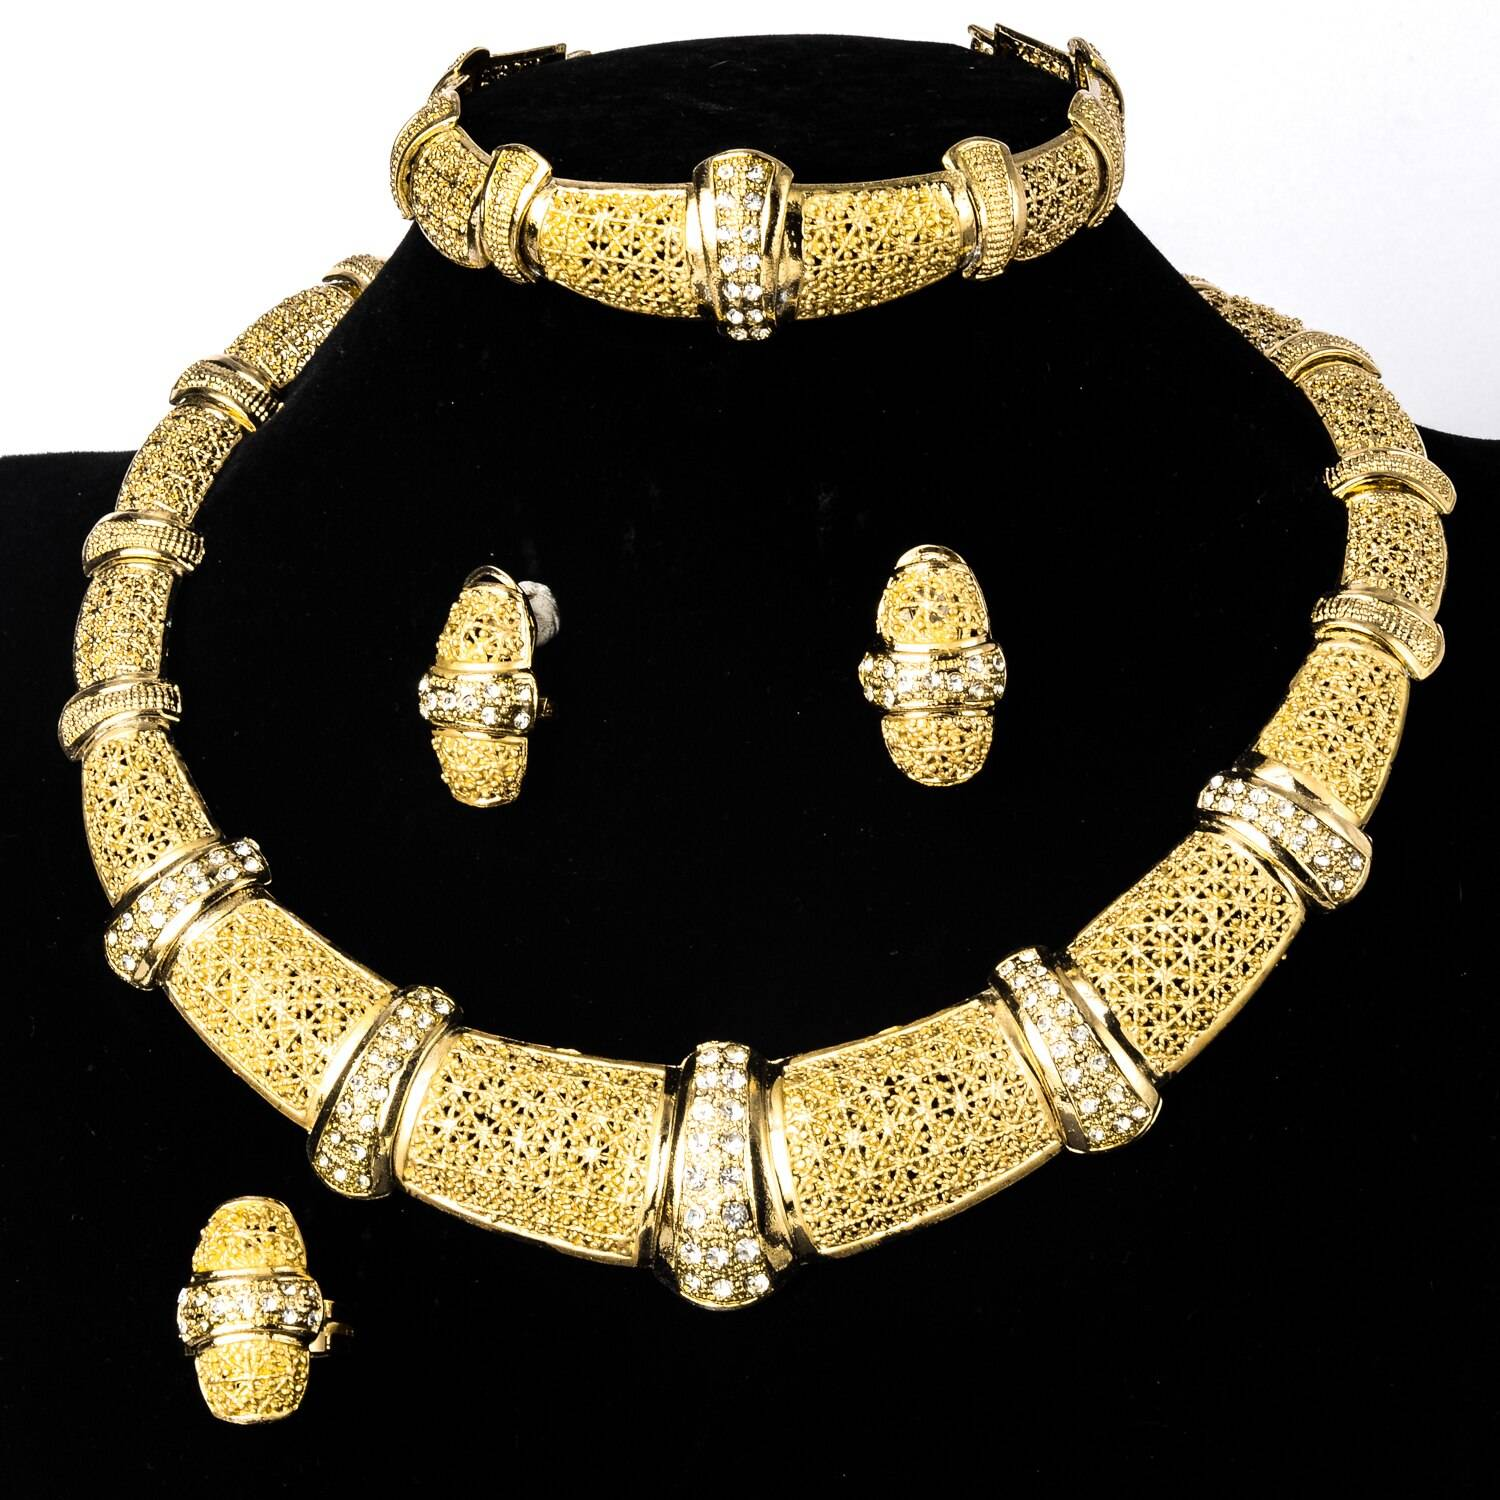 Diana baby Jewelry Sets New Fashion Gold Planted Bridal Zircon Earrings Necklace Bangle Ring For Women Classic Trendy Gift Wedding Jewellery Set 8d255f28538fbae46aeae7: Jewelry Sets